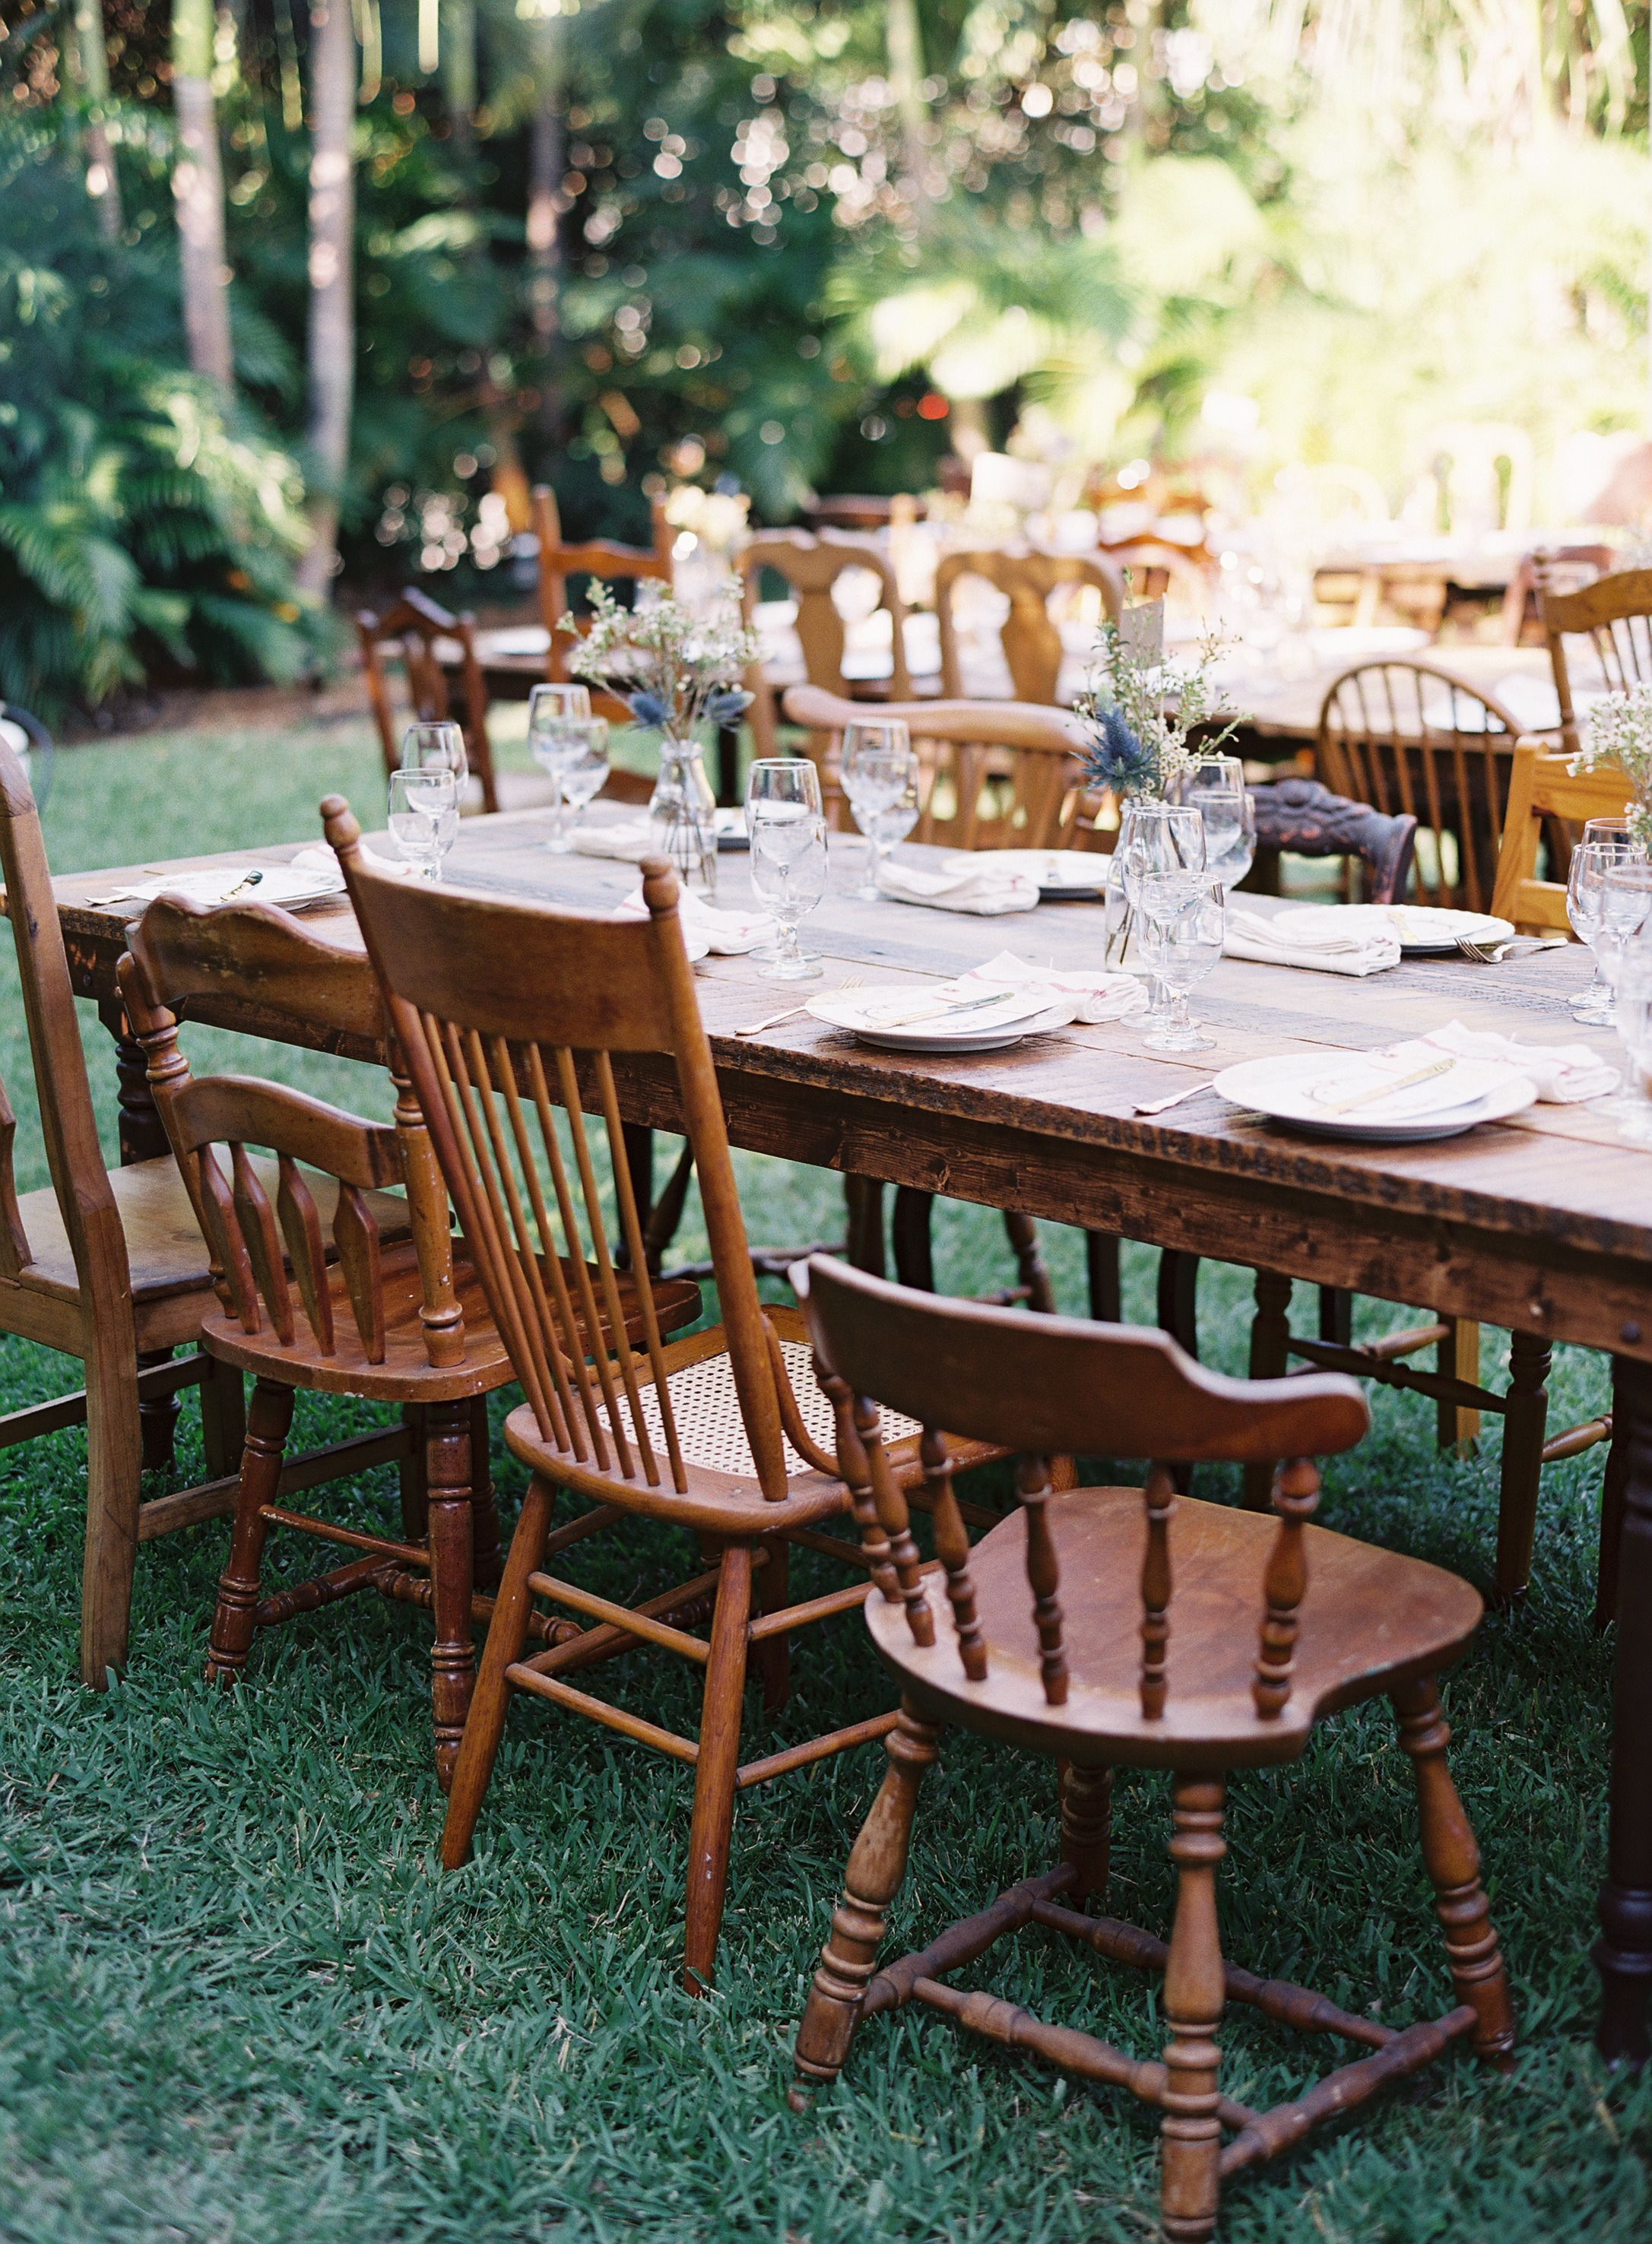 Wedding Wooden Chairs Ergonomic Chair Saddle Outdoor Art Gallery In Miami Rustic Chic